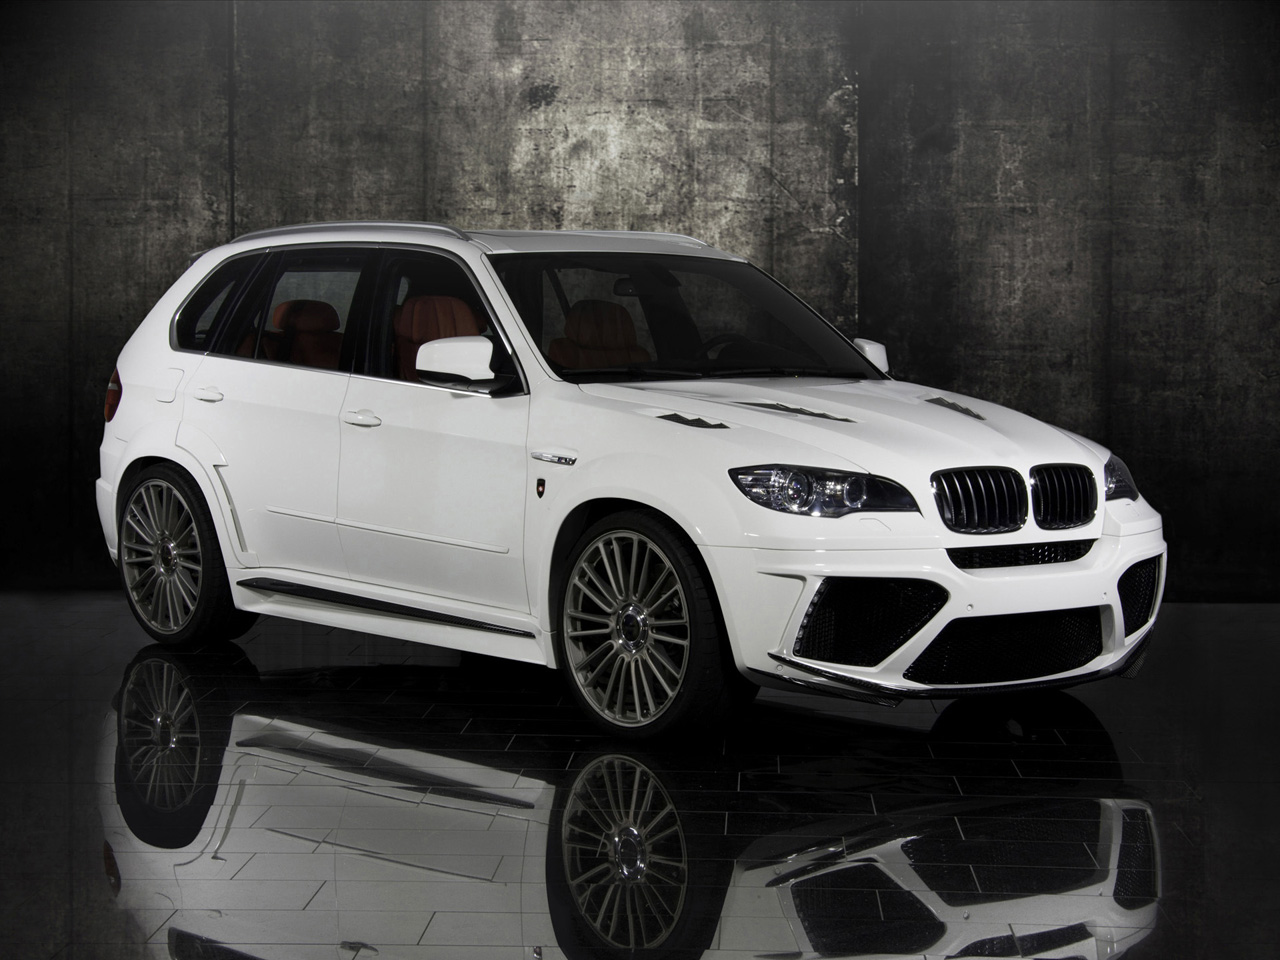 bmw x5 2011 mansory bmw x5 m. Black Bedroom Furniture Sets. Home Design Ideas